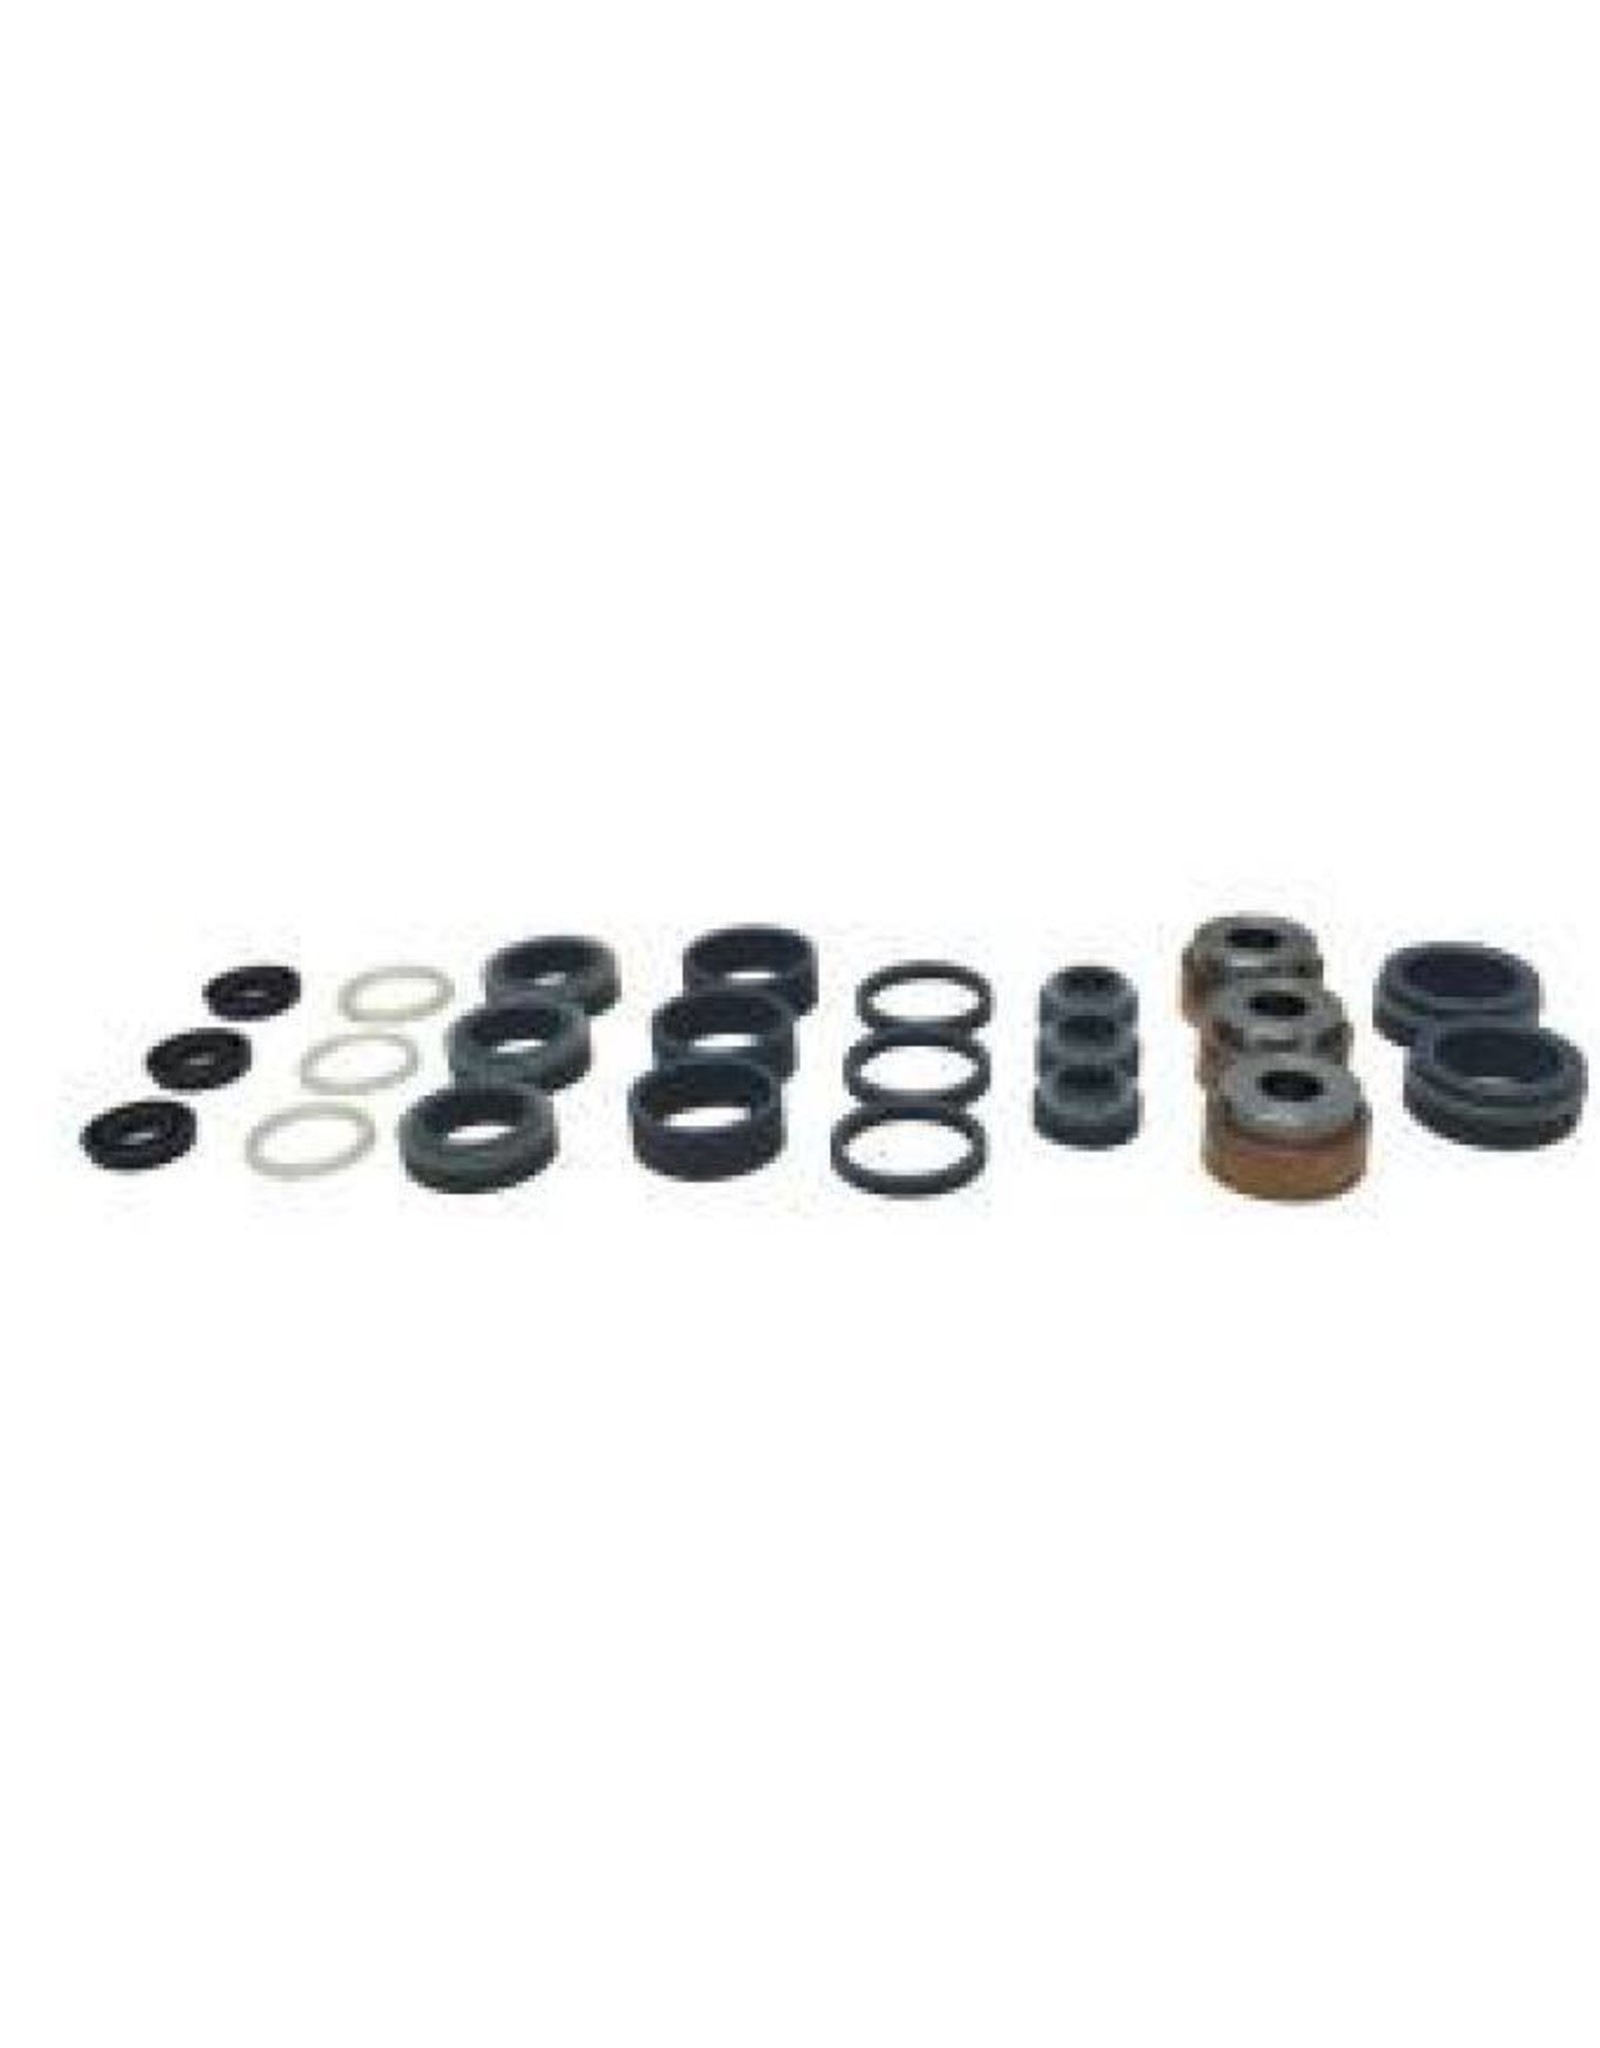 OMAX Style Minor Repair Kit (P3050/P4055)